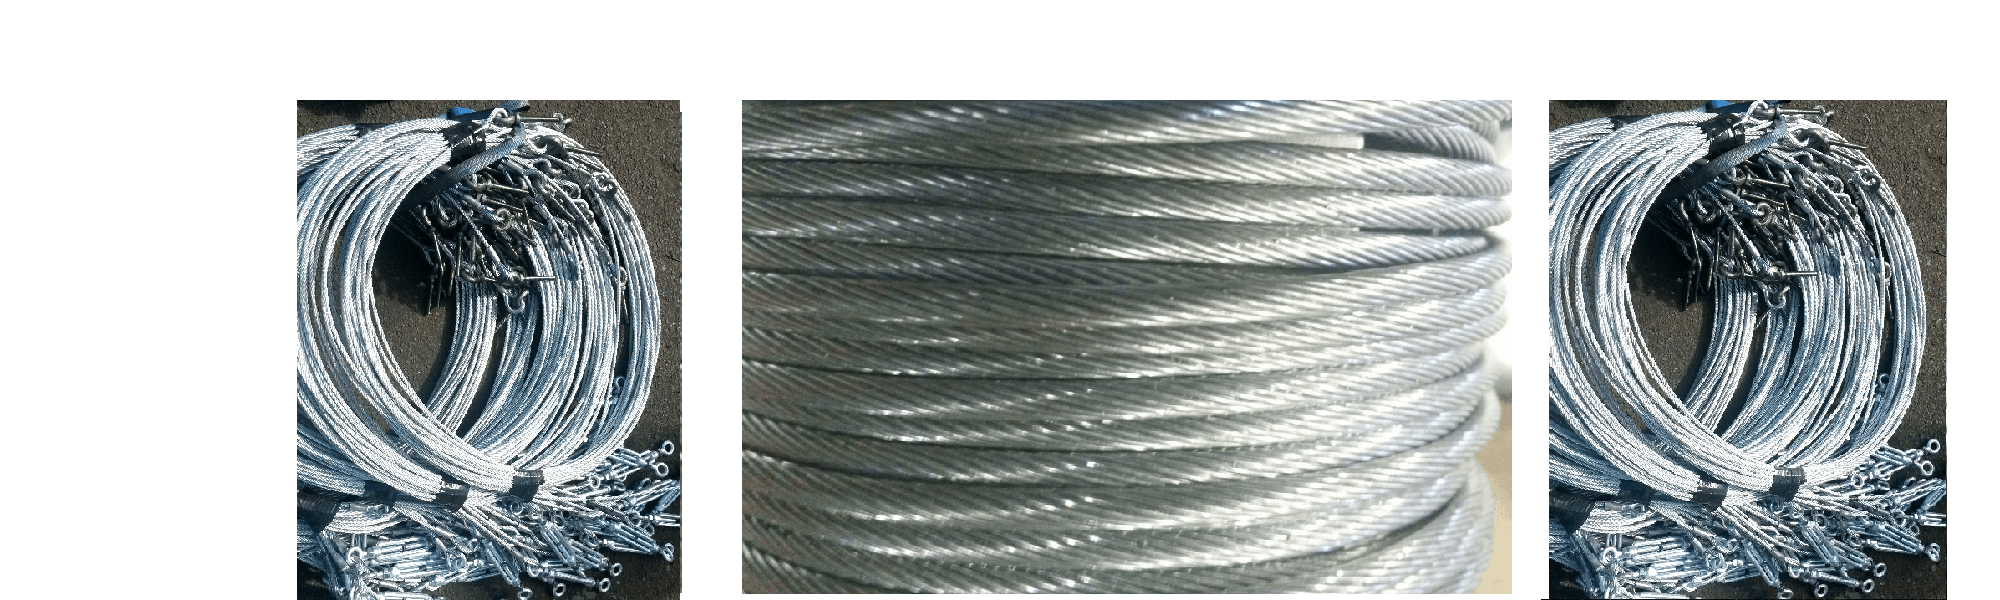 Catenary Wire | Buy Catenary Kits | Rope Services Direct UK